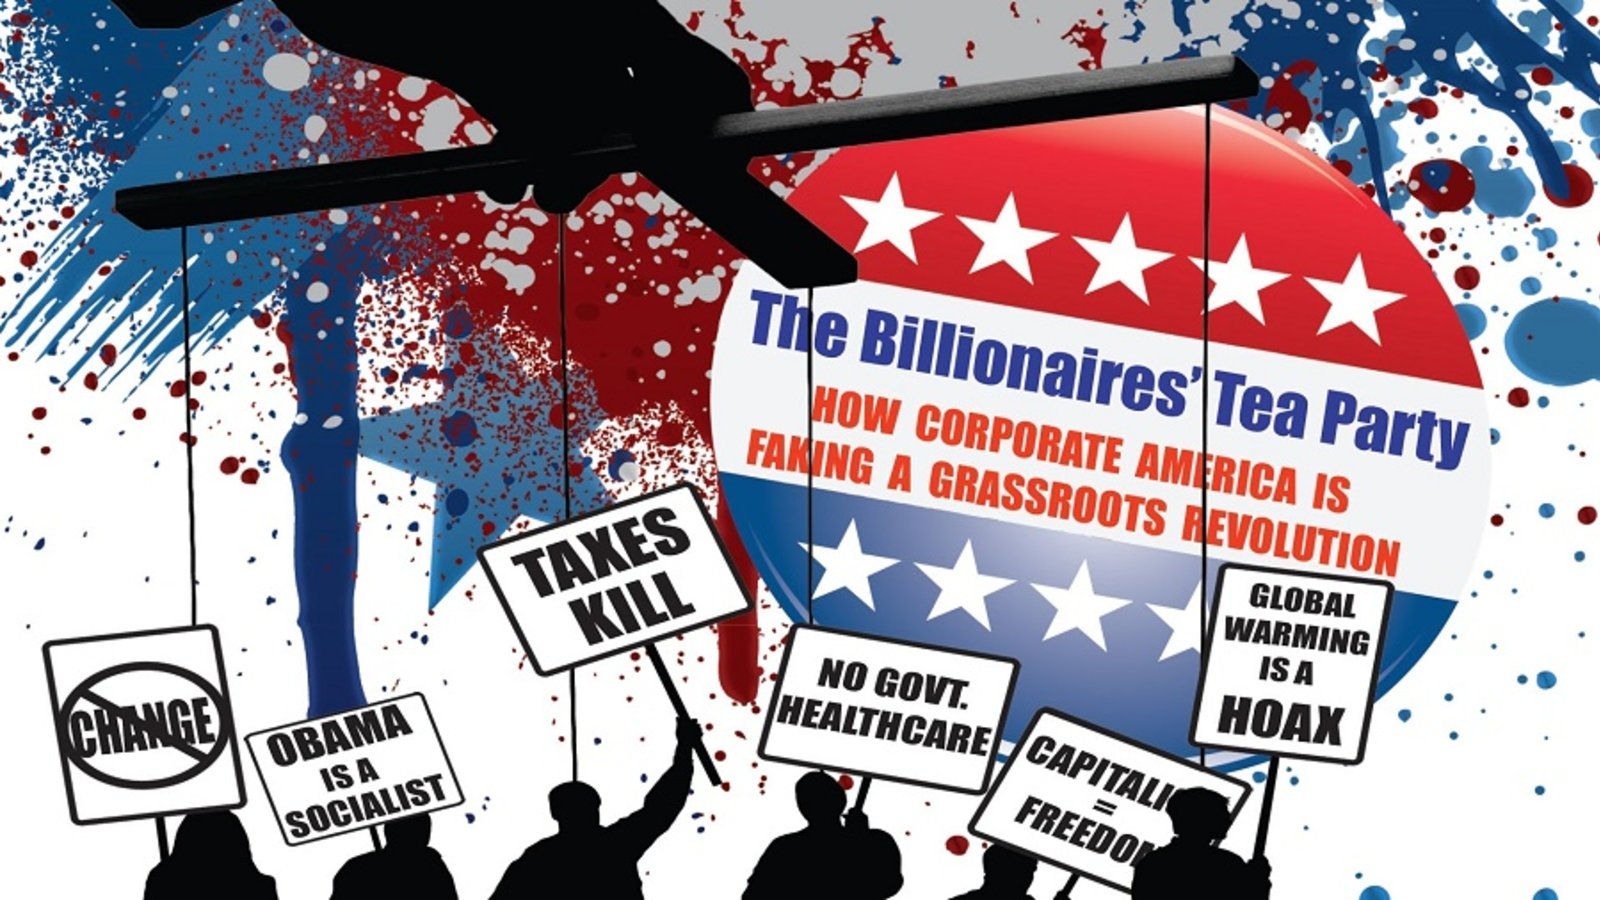 The Billionaires' Tea Party - How Corporate America is Faking a Grassroots Revolution